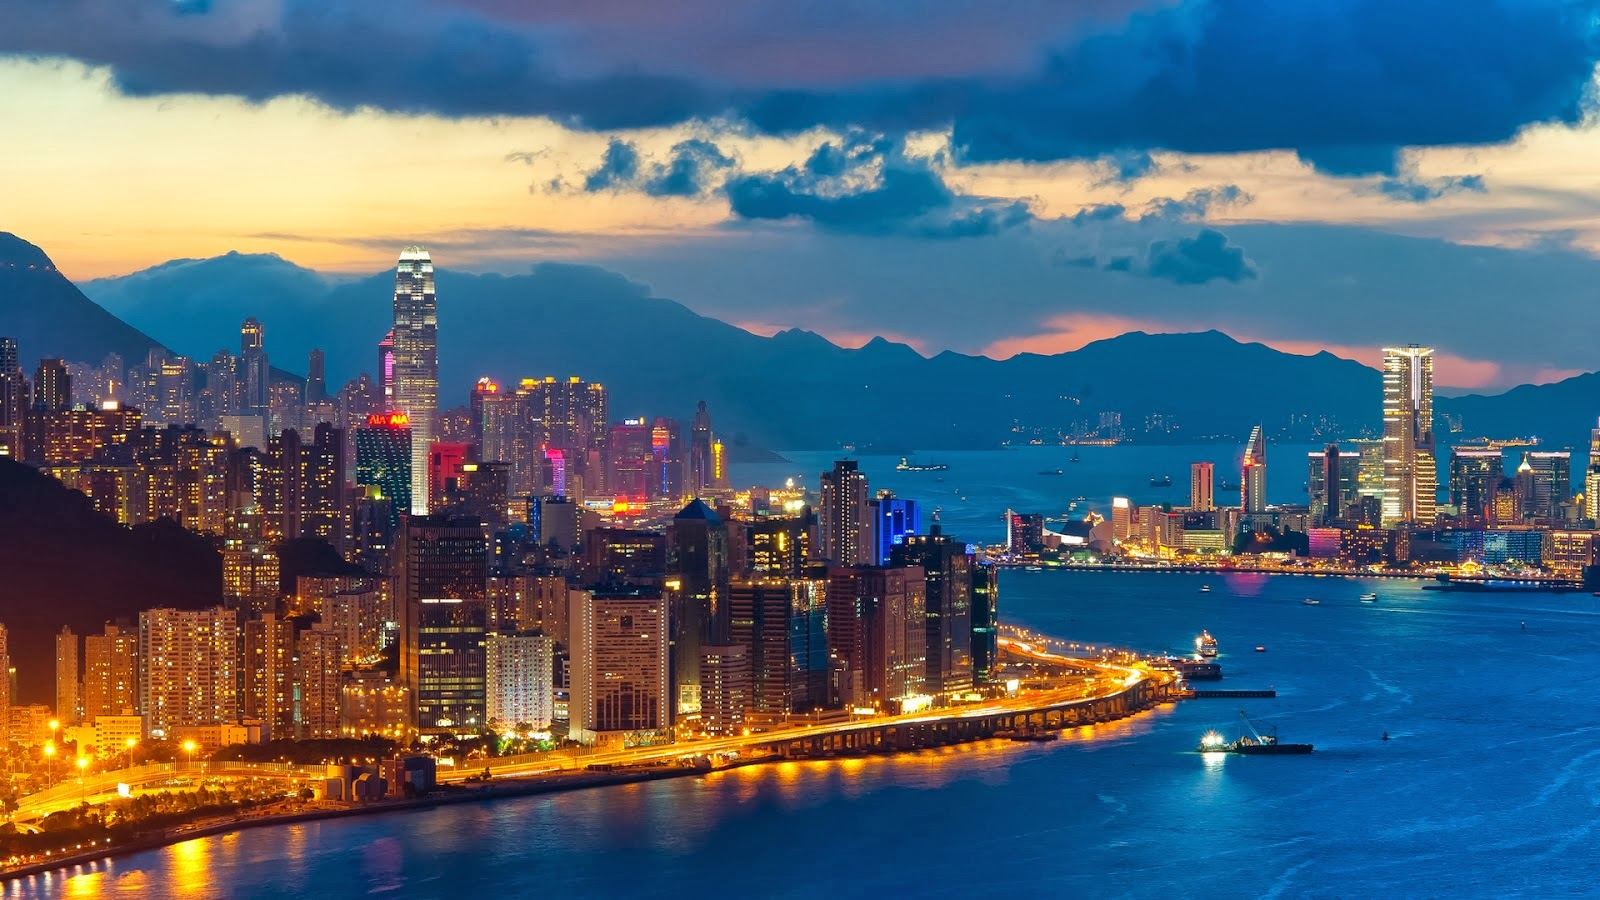 HD WALLPAPERS: Download Hong Kong City HD Wallpapers 1080p